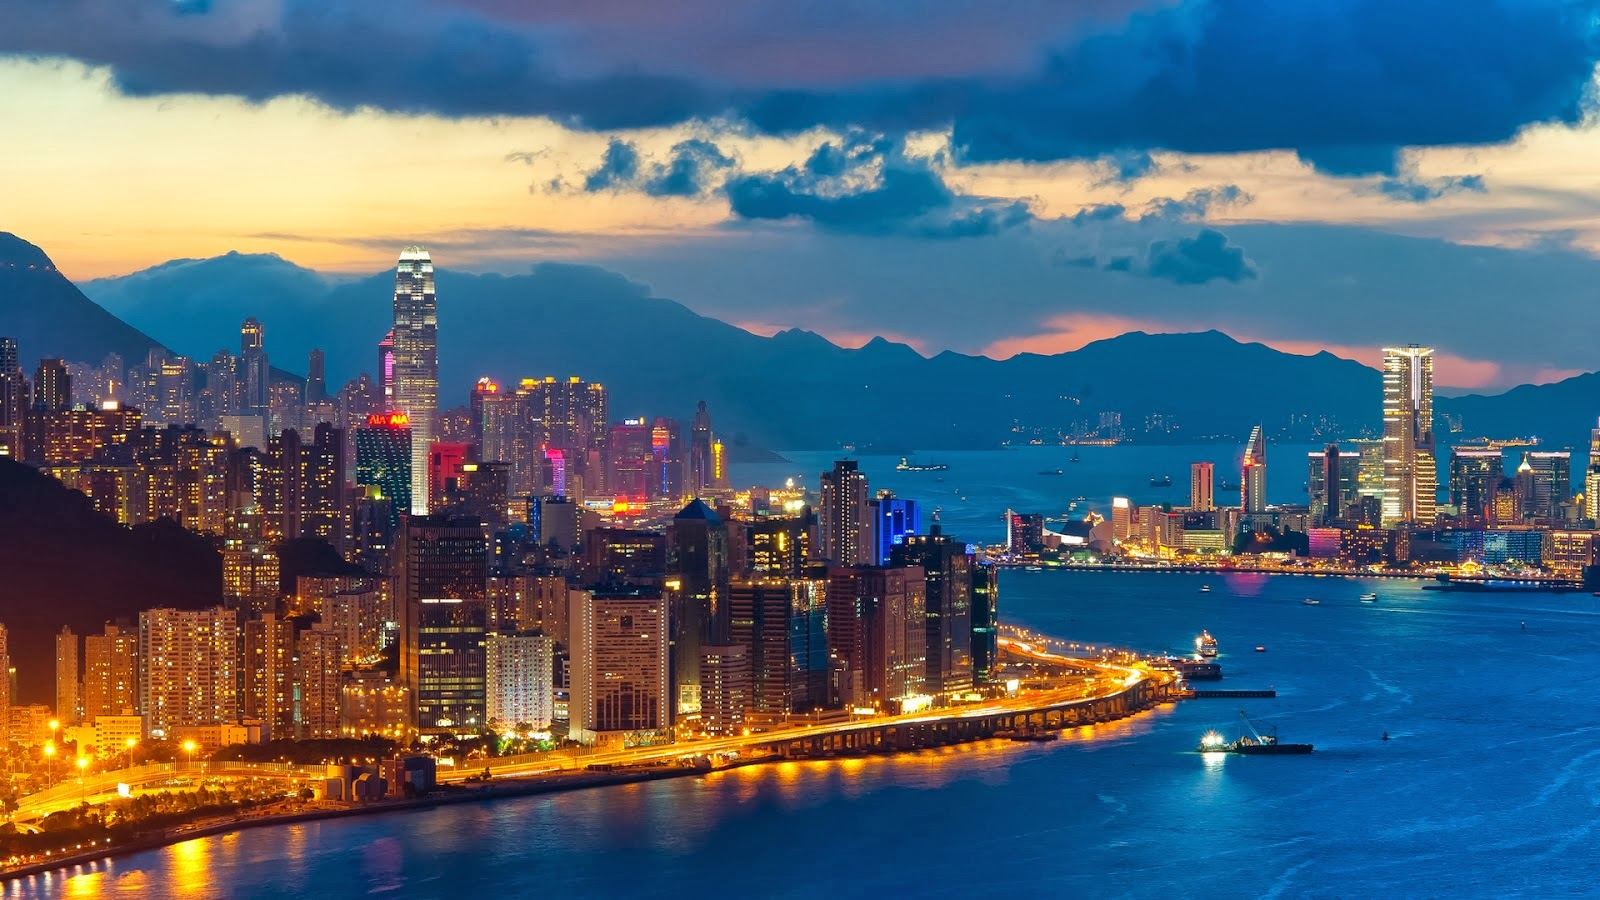 HD WALLPAPERS: Download Hong Kong City HD Wallpapers 1080p